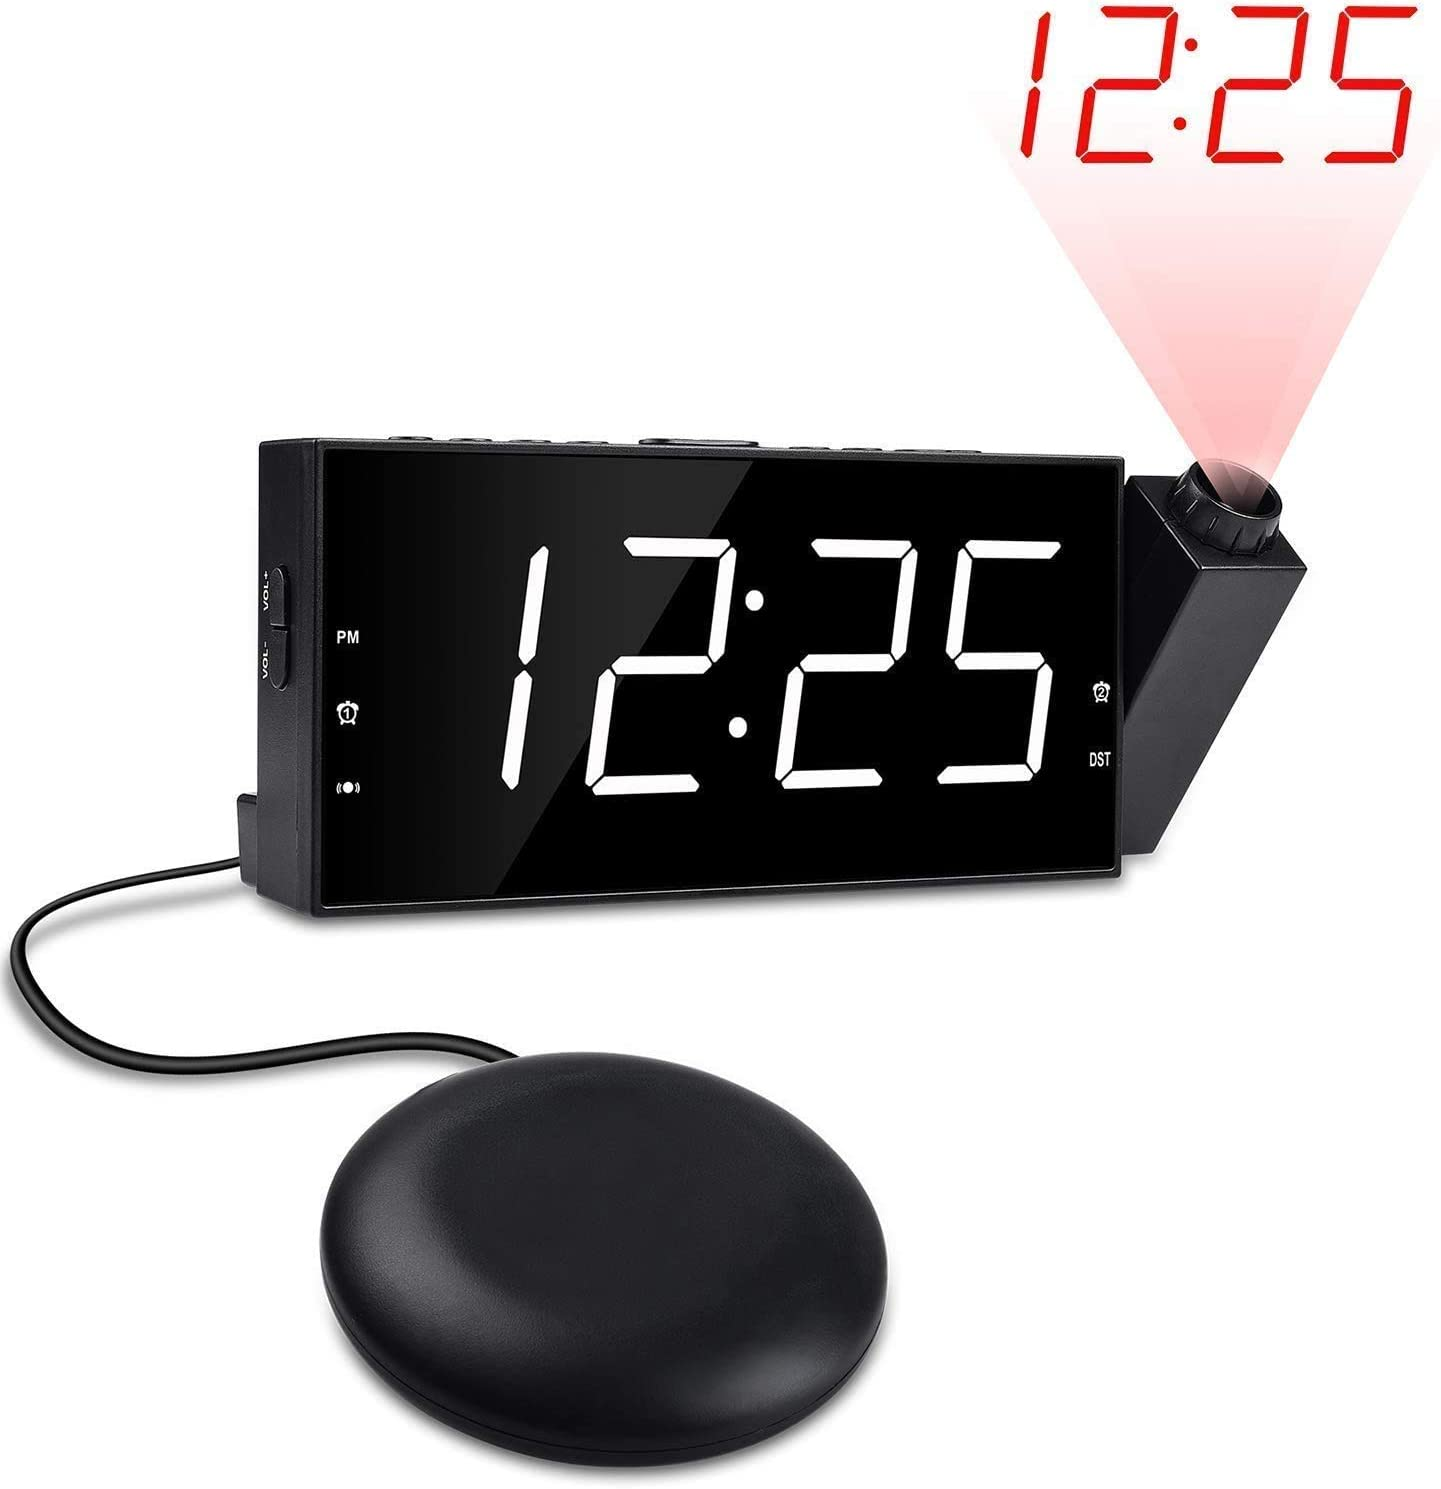 OnLyee Projection Digital Alarm Clock for Bedrooms Dual Loud Alarm Clock with Bed Shaker 7 Large Led Display with Dimmer USB Charging Port and Battery Backup for Heavy Sleepers Kids, Elders